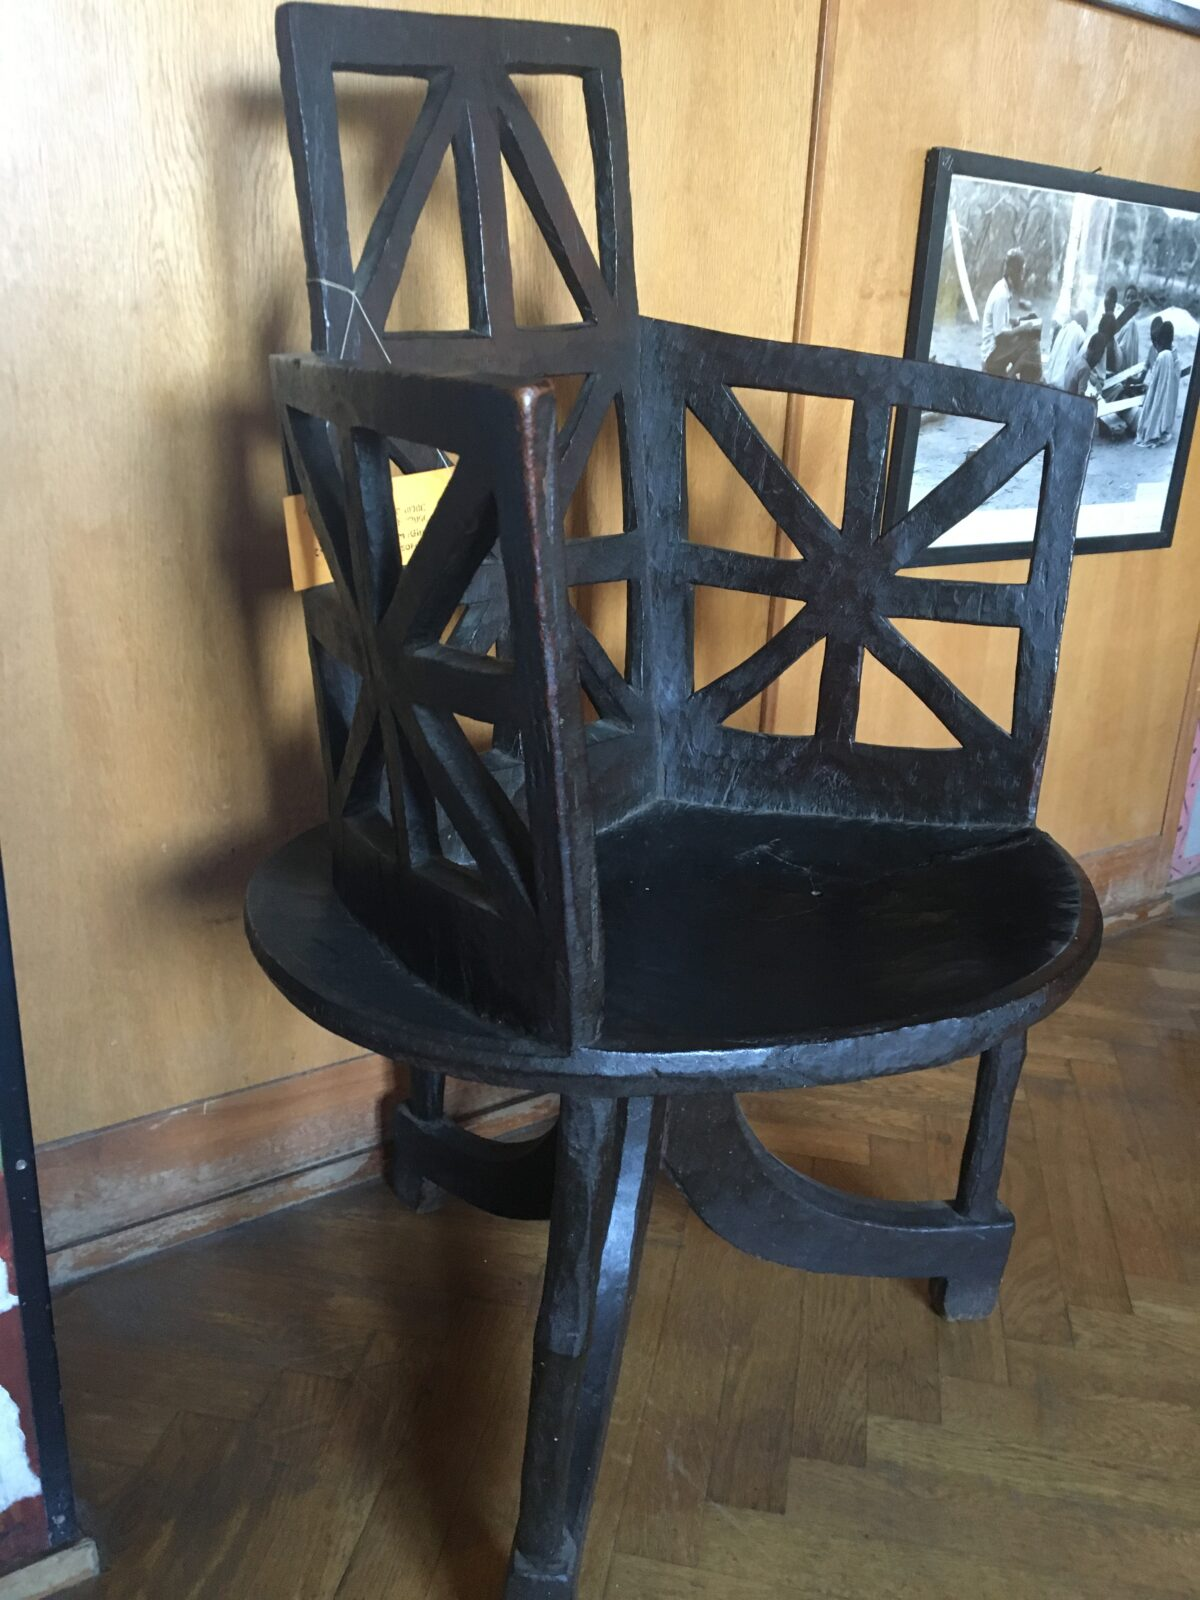 A very dark wooden chair with three swopping legs, a saucer-shaped seat, and a pierced-carving starburst pattern on its back rest and under its arms.